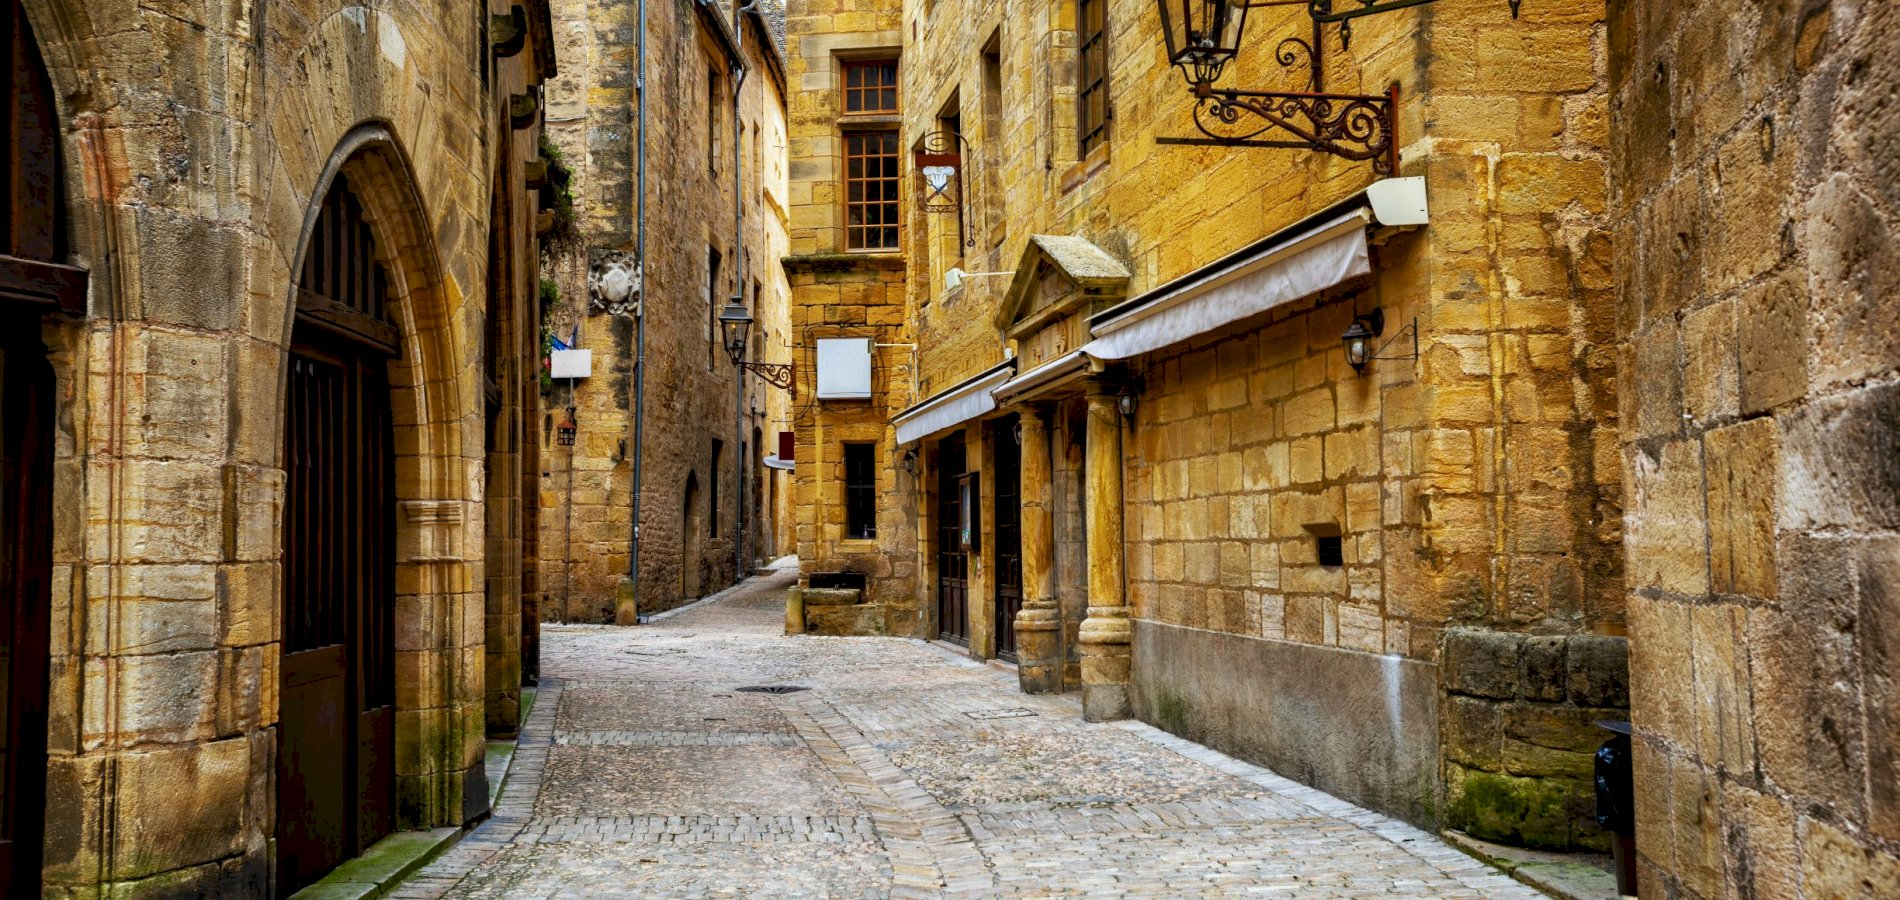 Ophorus Tours - Sarlat Small Group Private Guided Walking Tour with a Licensed Tour Guide